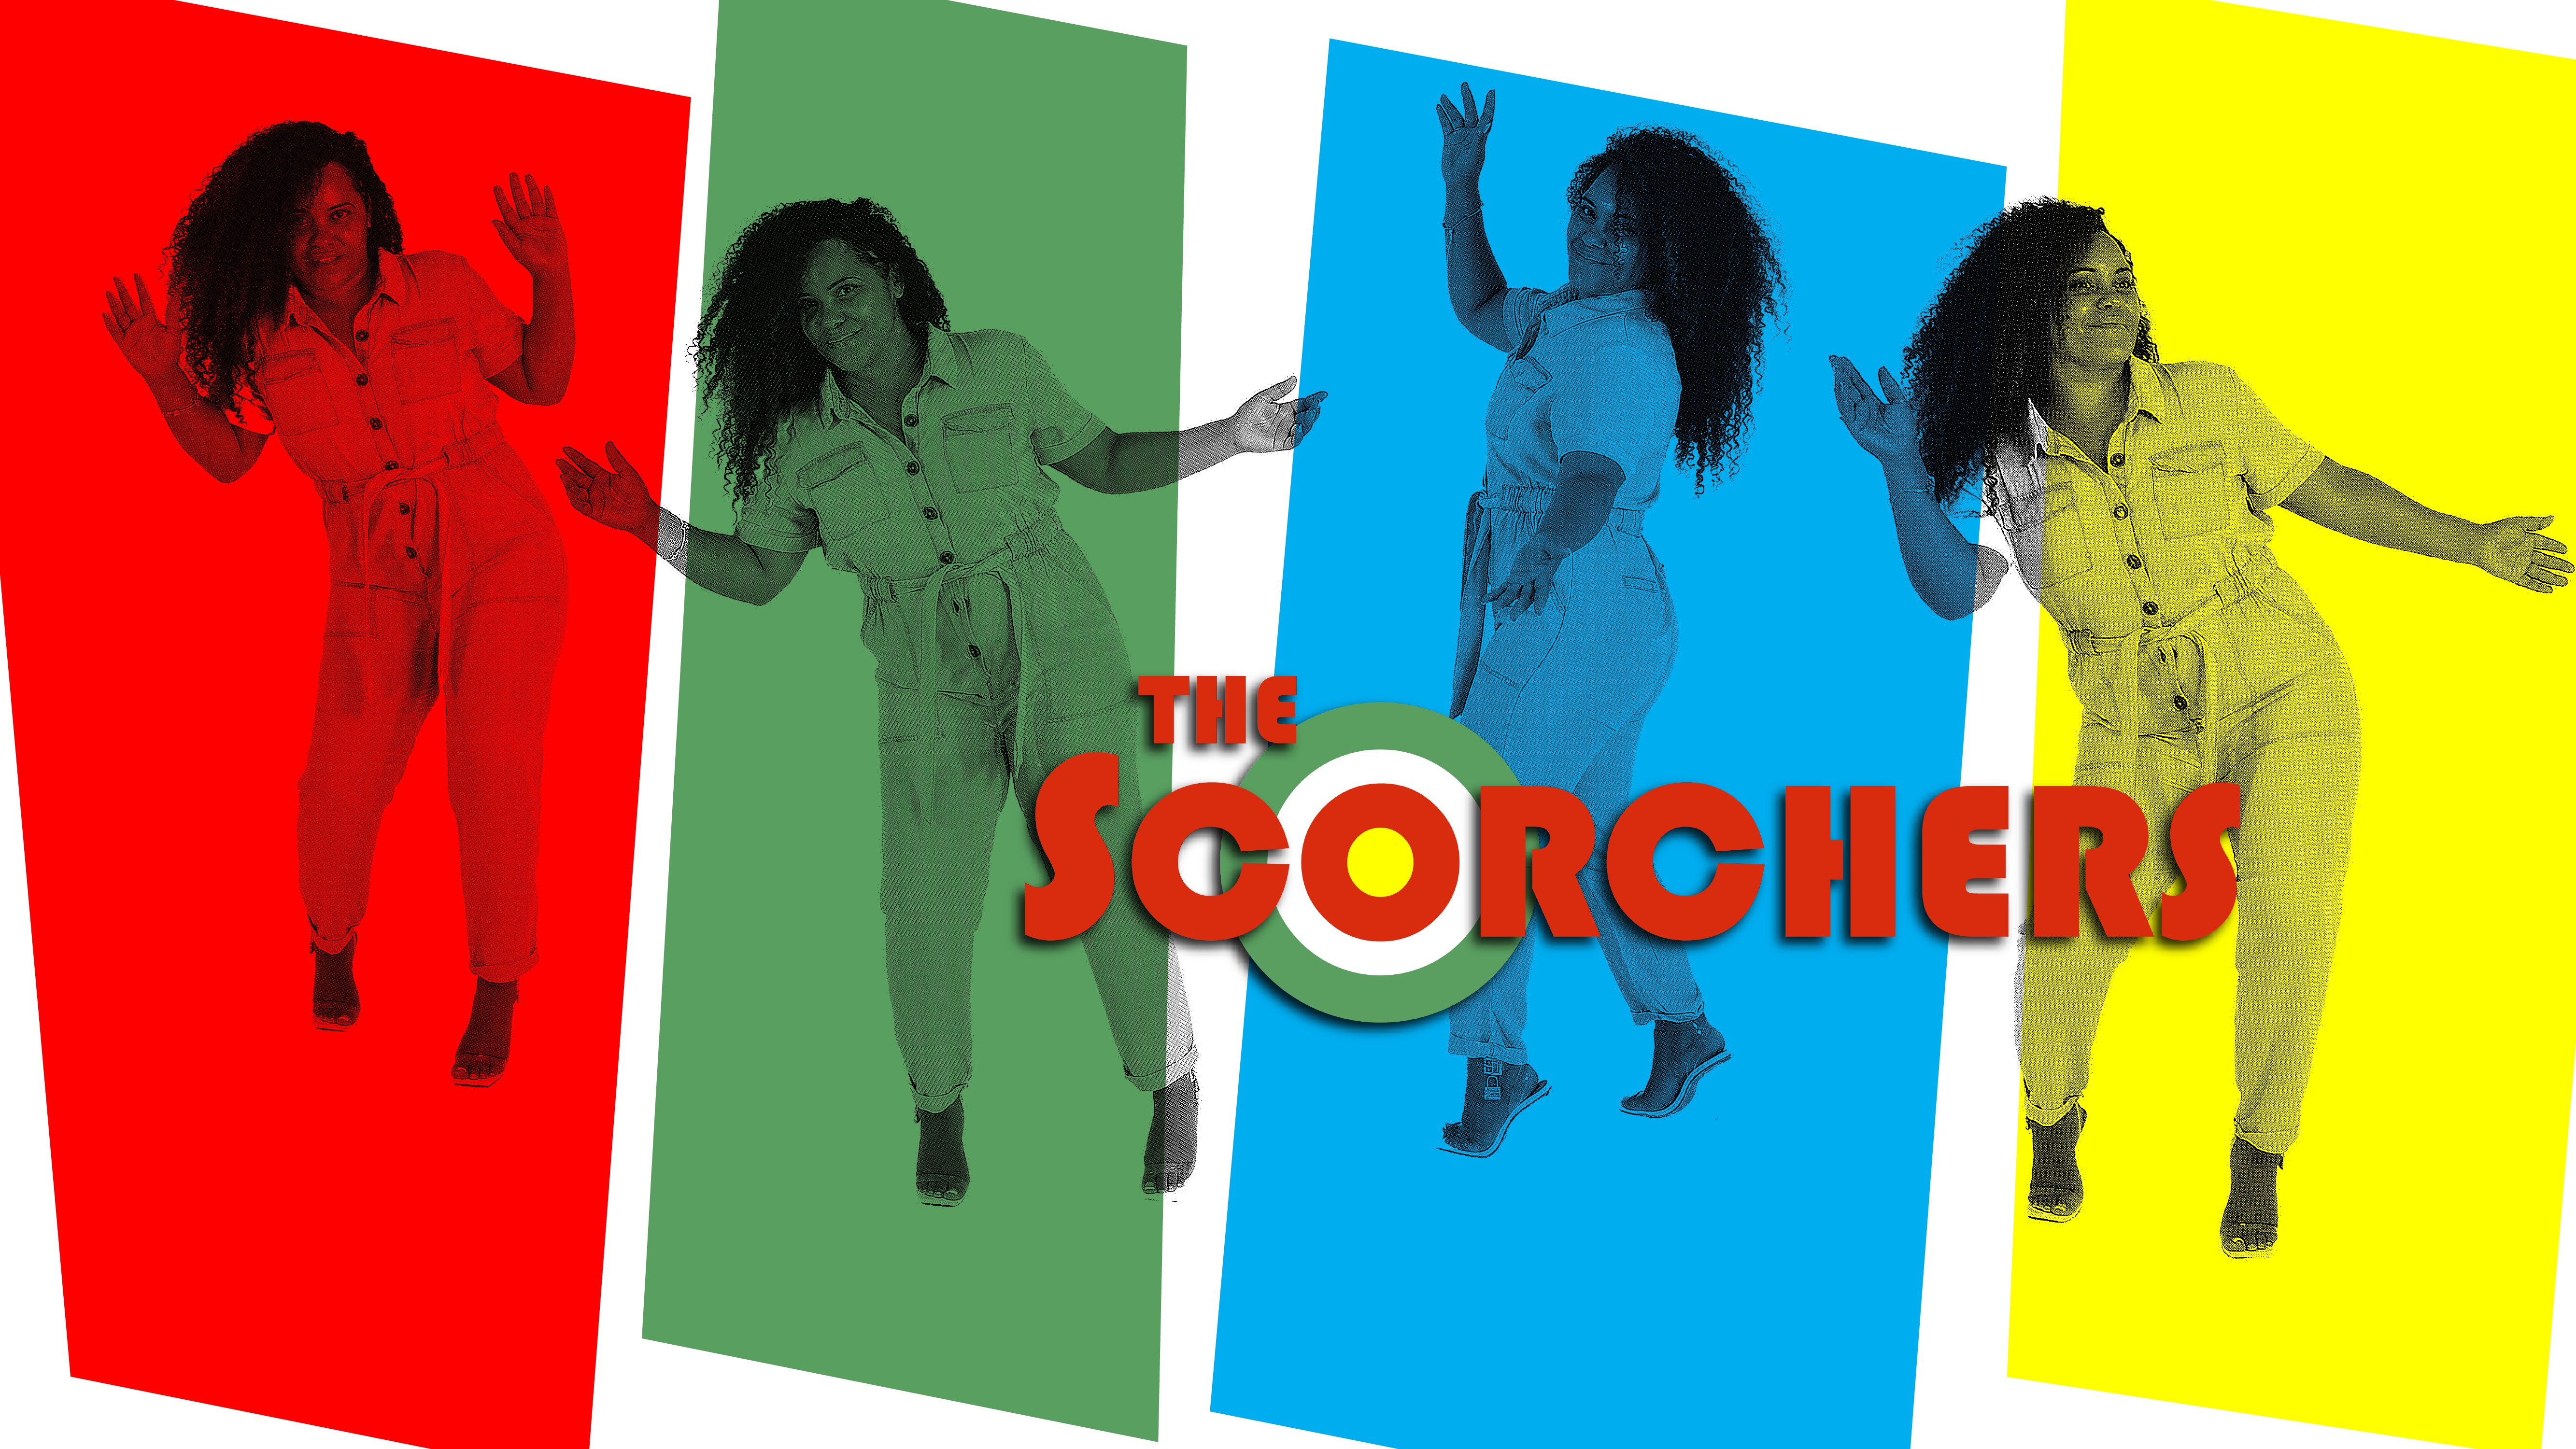 The Scorchers Rocksteady Band Bringing Great New Tunes Over Classic Grooves